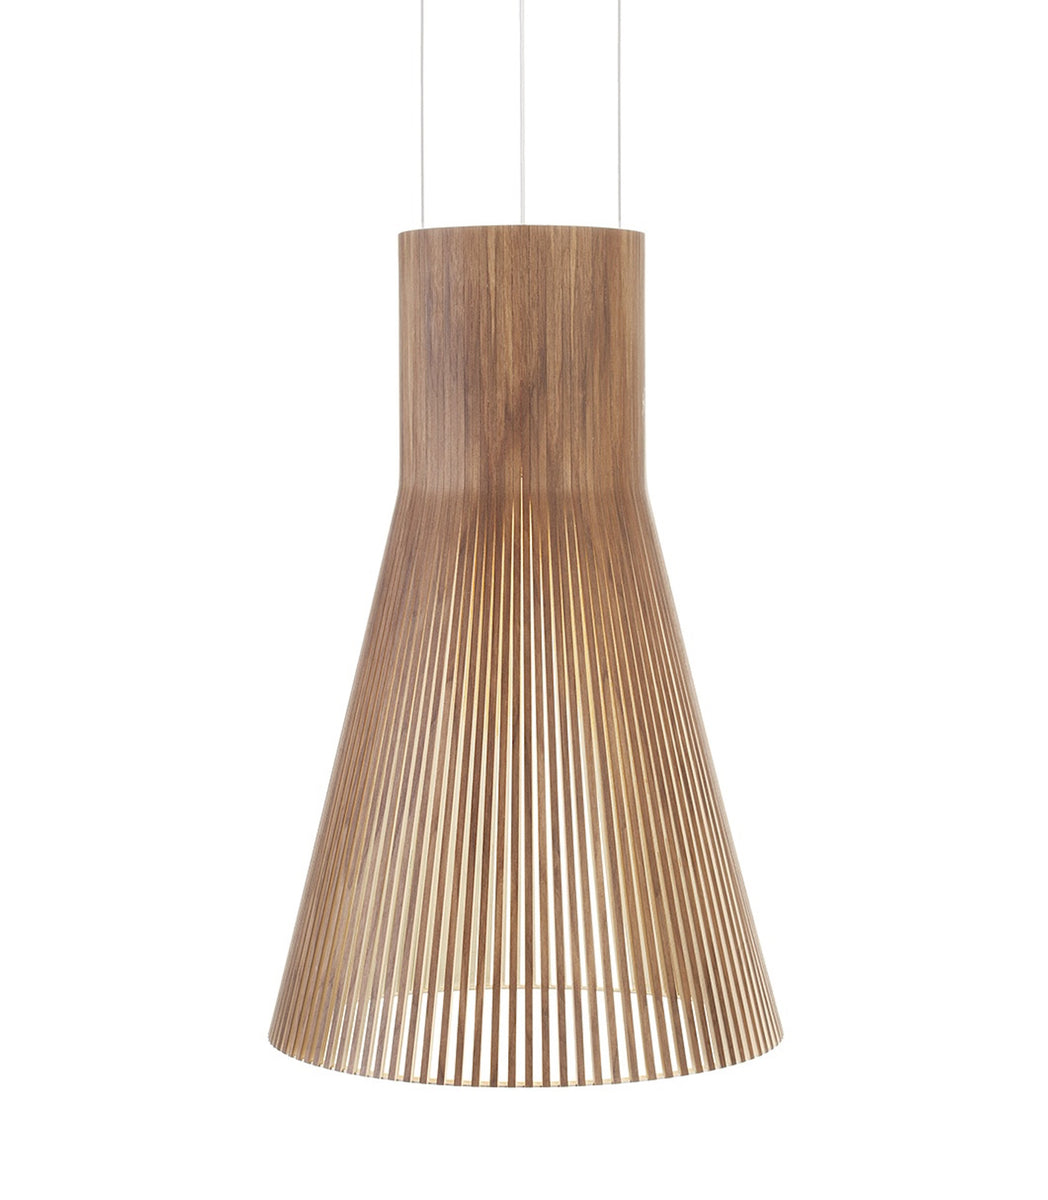 Magnum 4202 Pendant Walnut Secto Design Seppo Koho pendant large contemporary ceiling light handmade birch